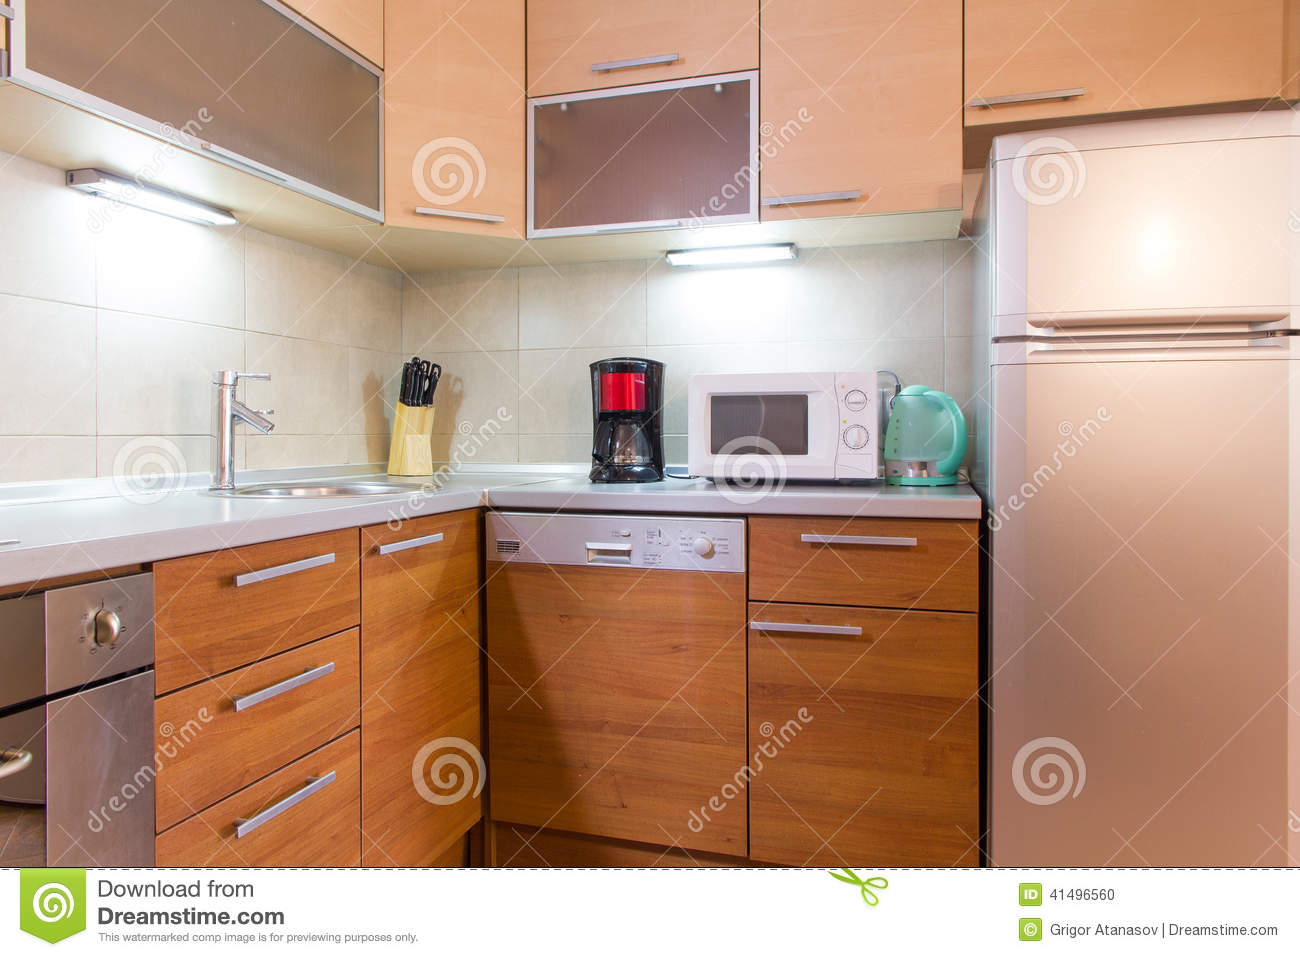 Les Petites Cuisines Modernes Of Photo Stock Small Modern Kitchen Image 41496560